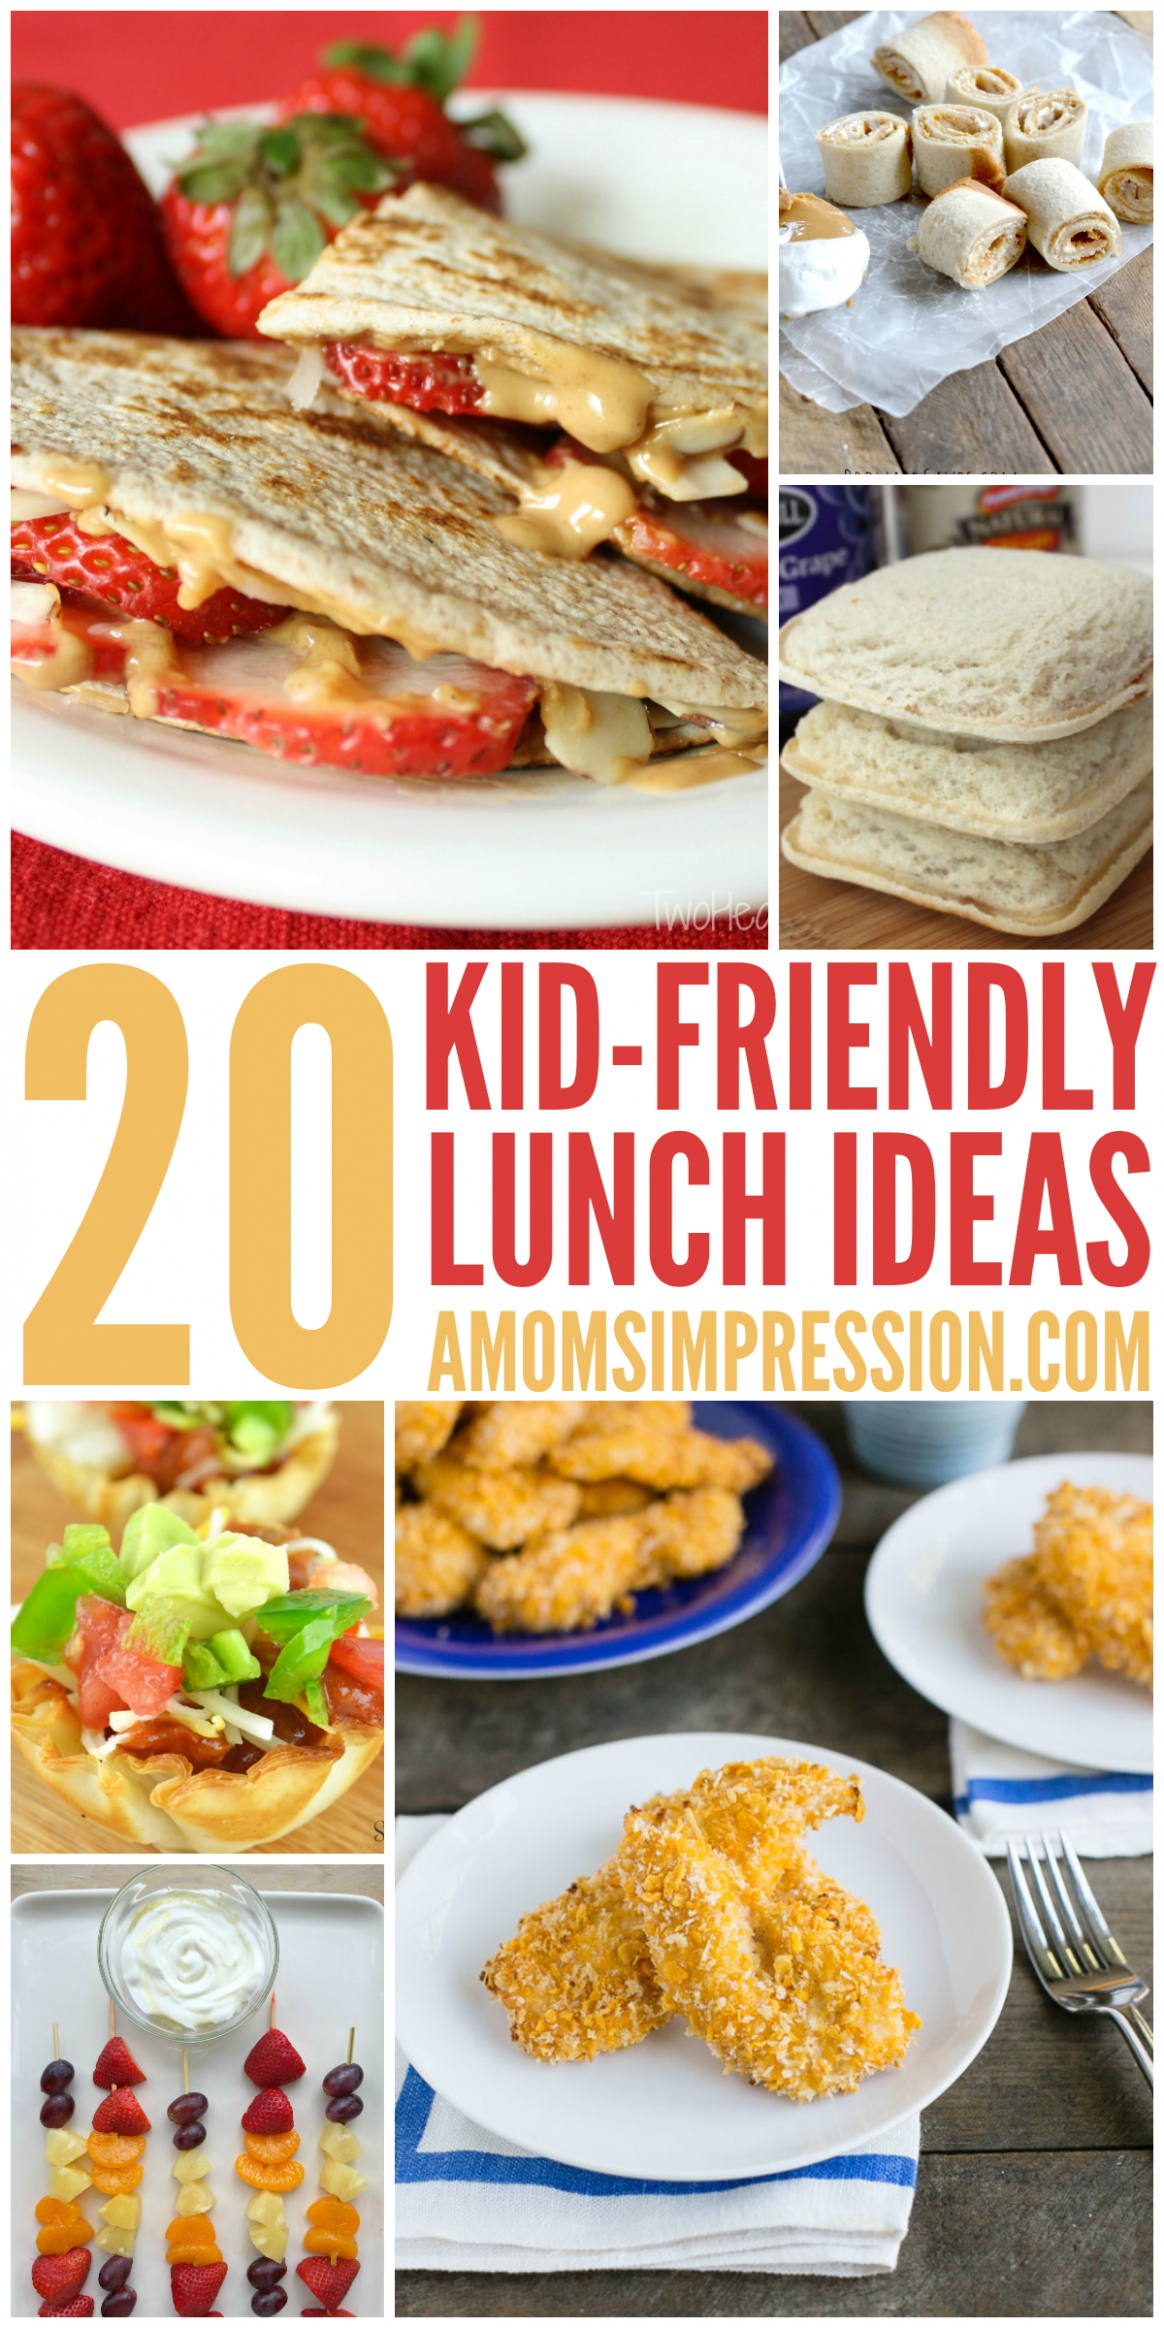 11 kid friendly lunches - a healthy recipe ideas for Back to ..